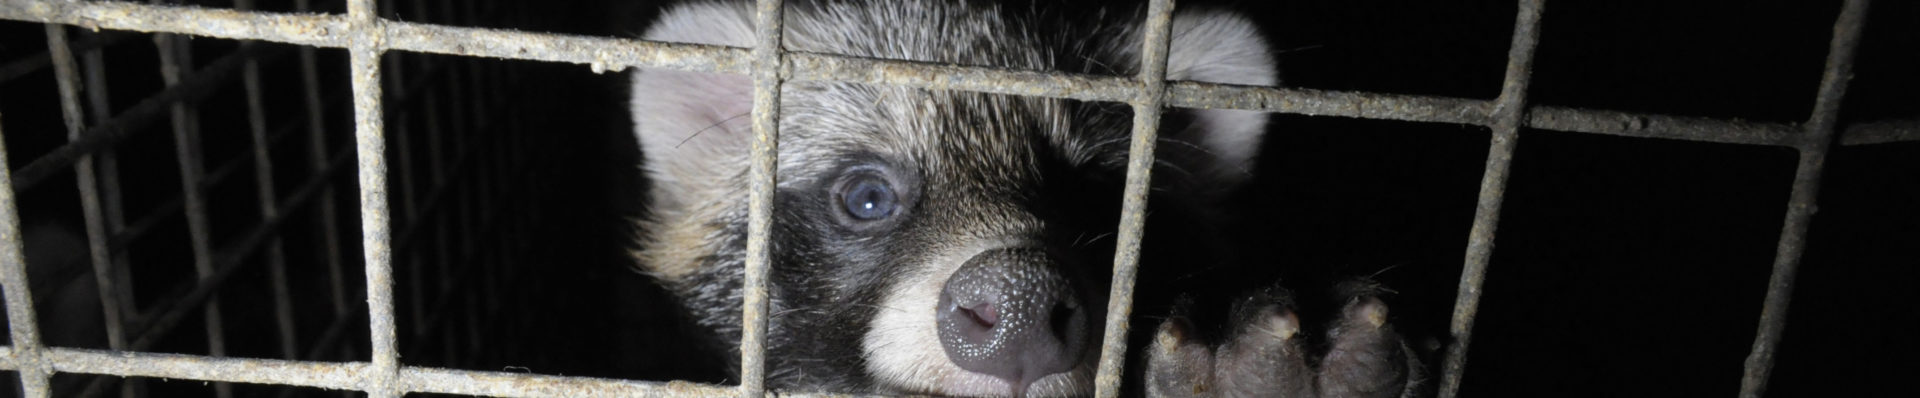 Swedish government urged to phase out fur farming